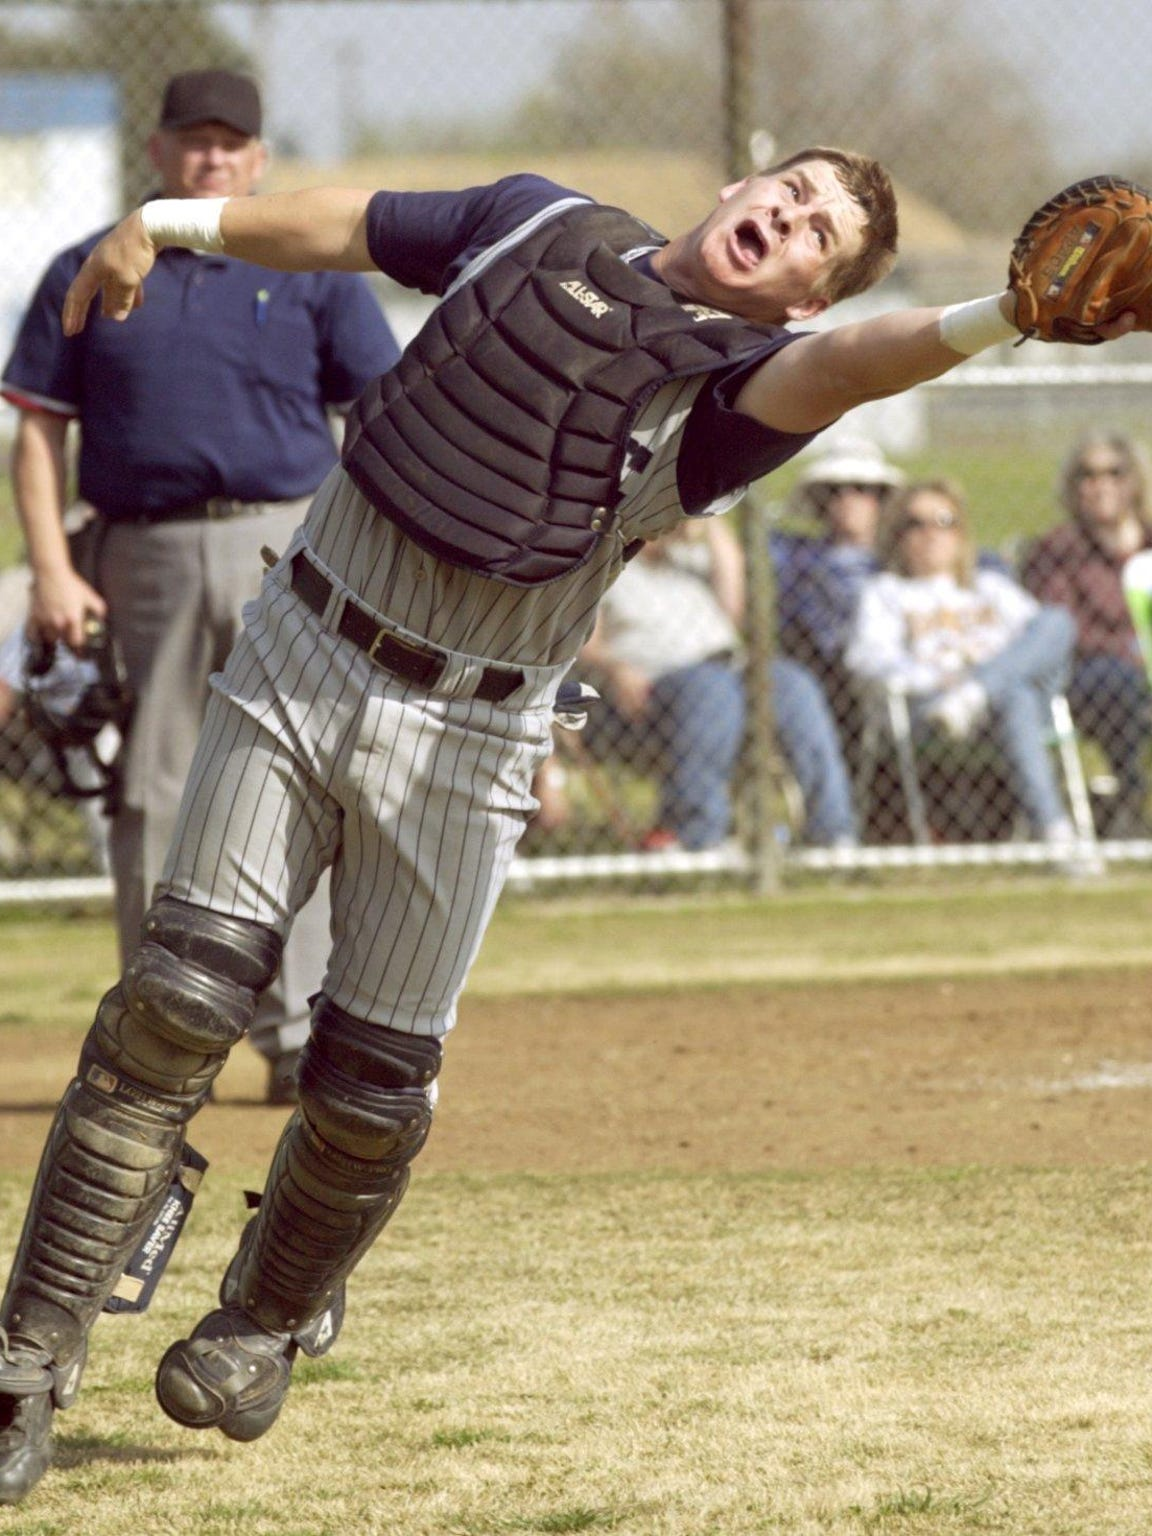 Then Central Valley Christian catcher Stephen Vogt